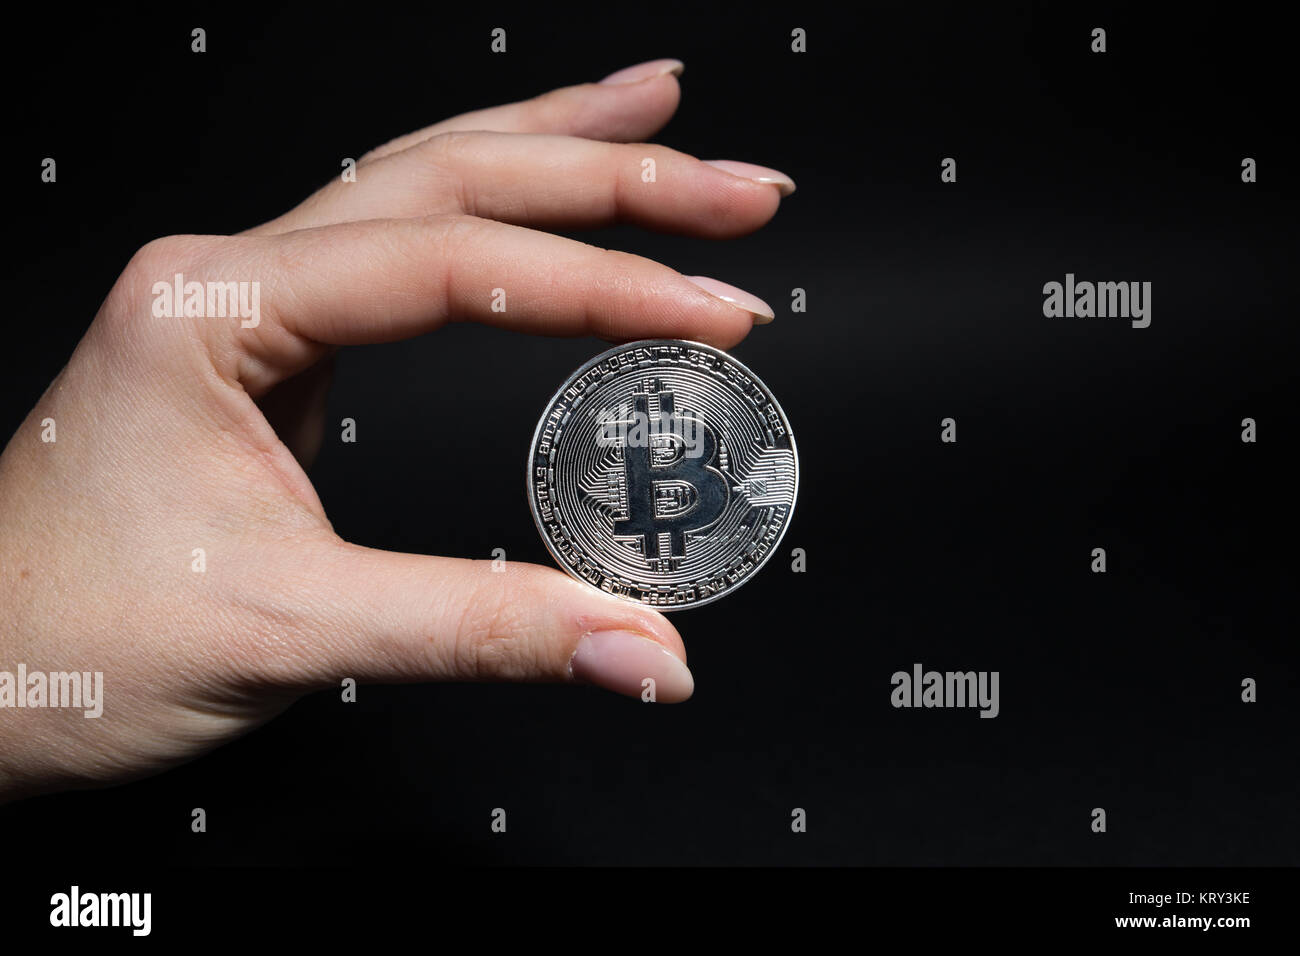 Woman hand holding a silver metal bitcoin on black background as virtual currency or e-commerce in cyberspace concept - Stock Image